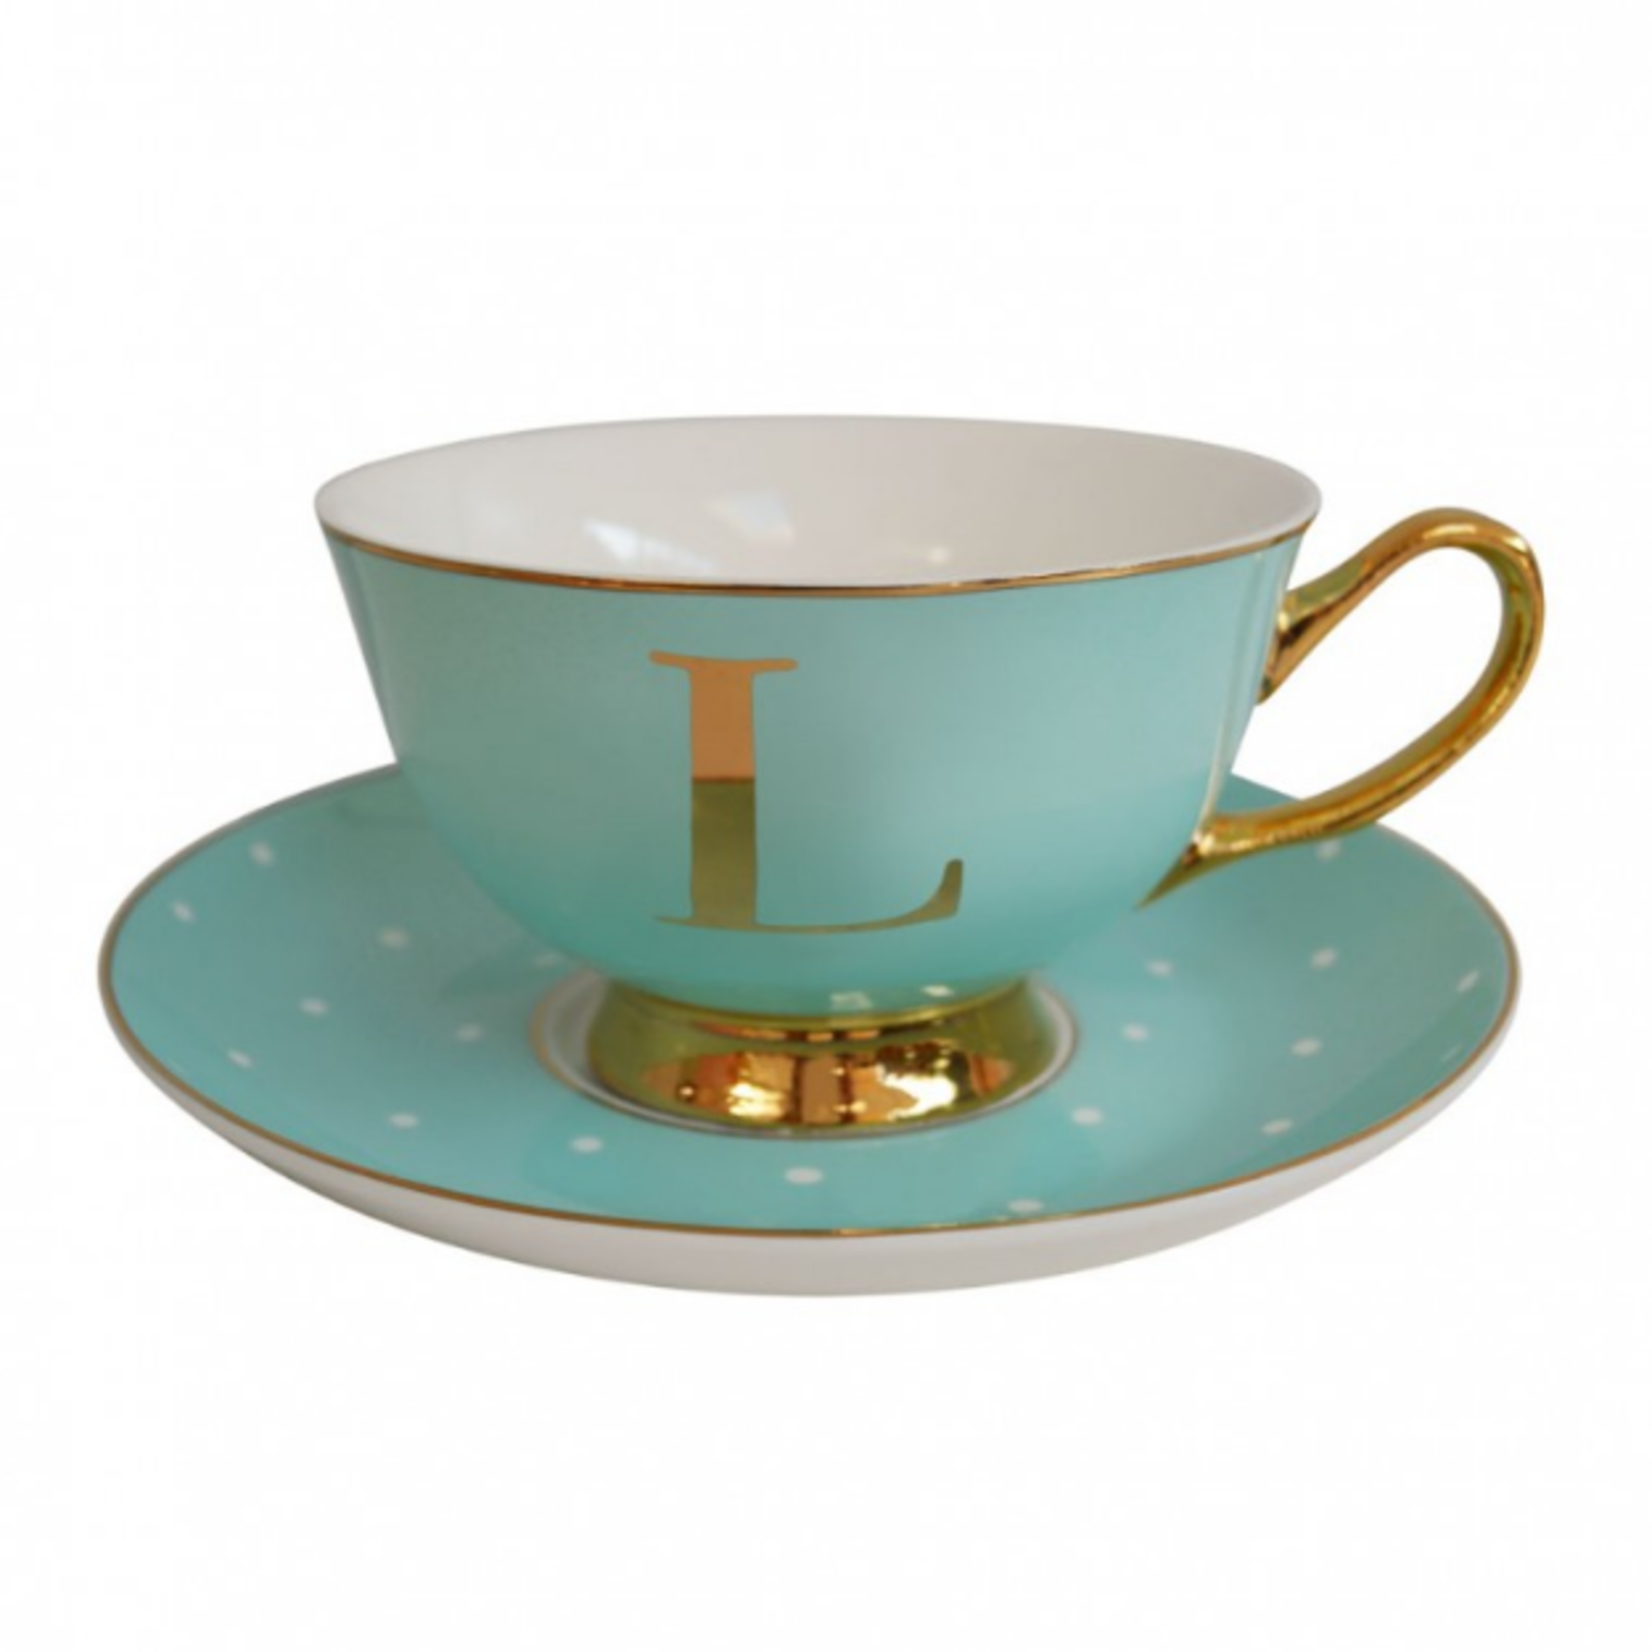 BoDuck Alphabet Spotty Teacup and Saucer Letter L Gold/Mint